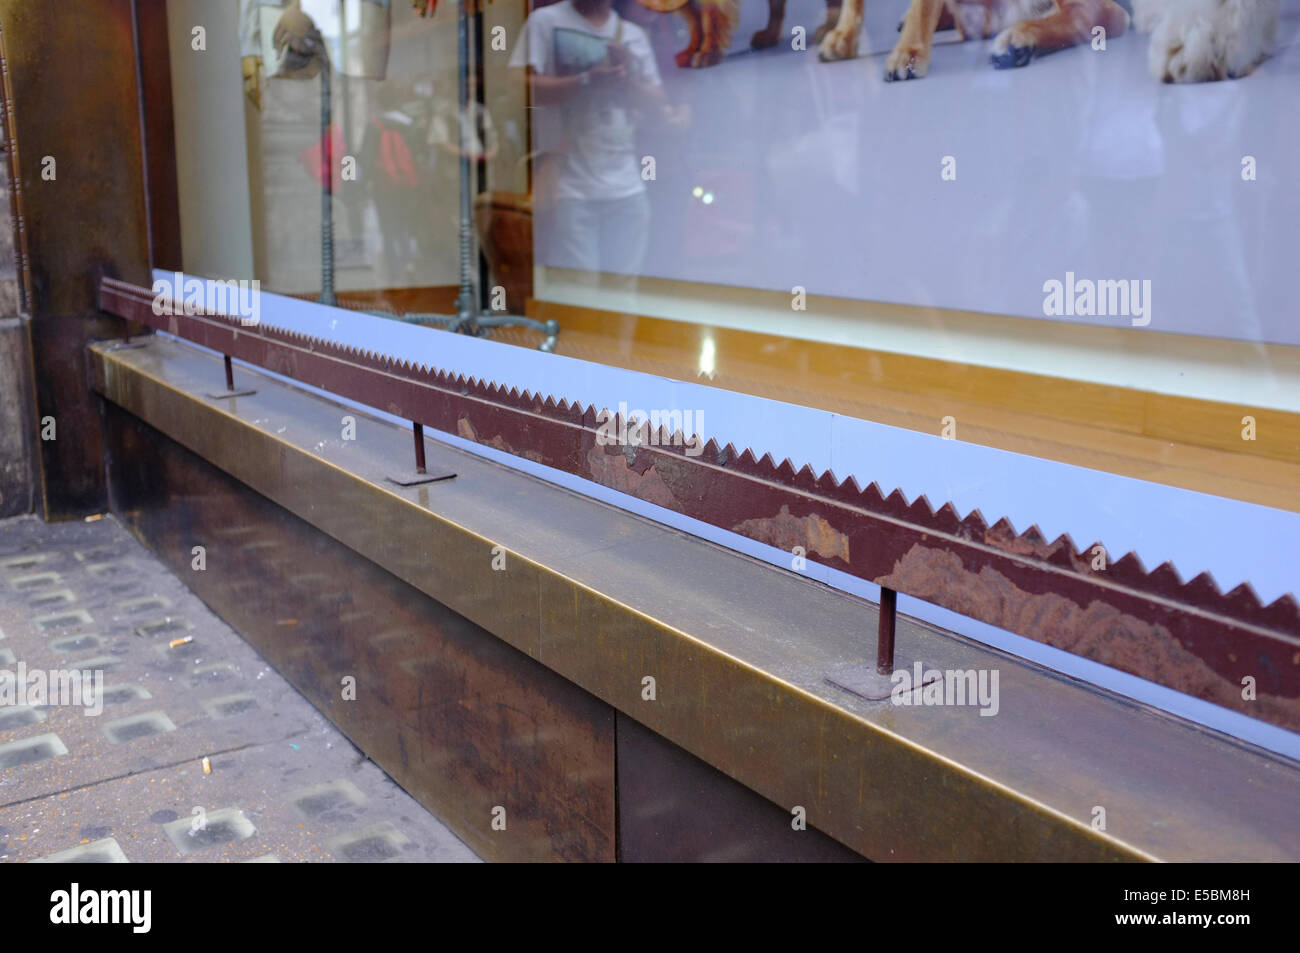 serrated metal bar to prevent people sitting or sleeping on shop window ledge - Stock Image